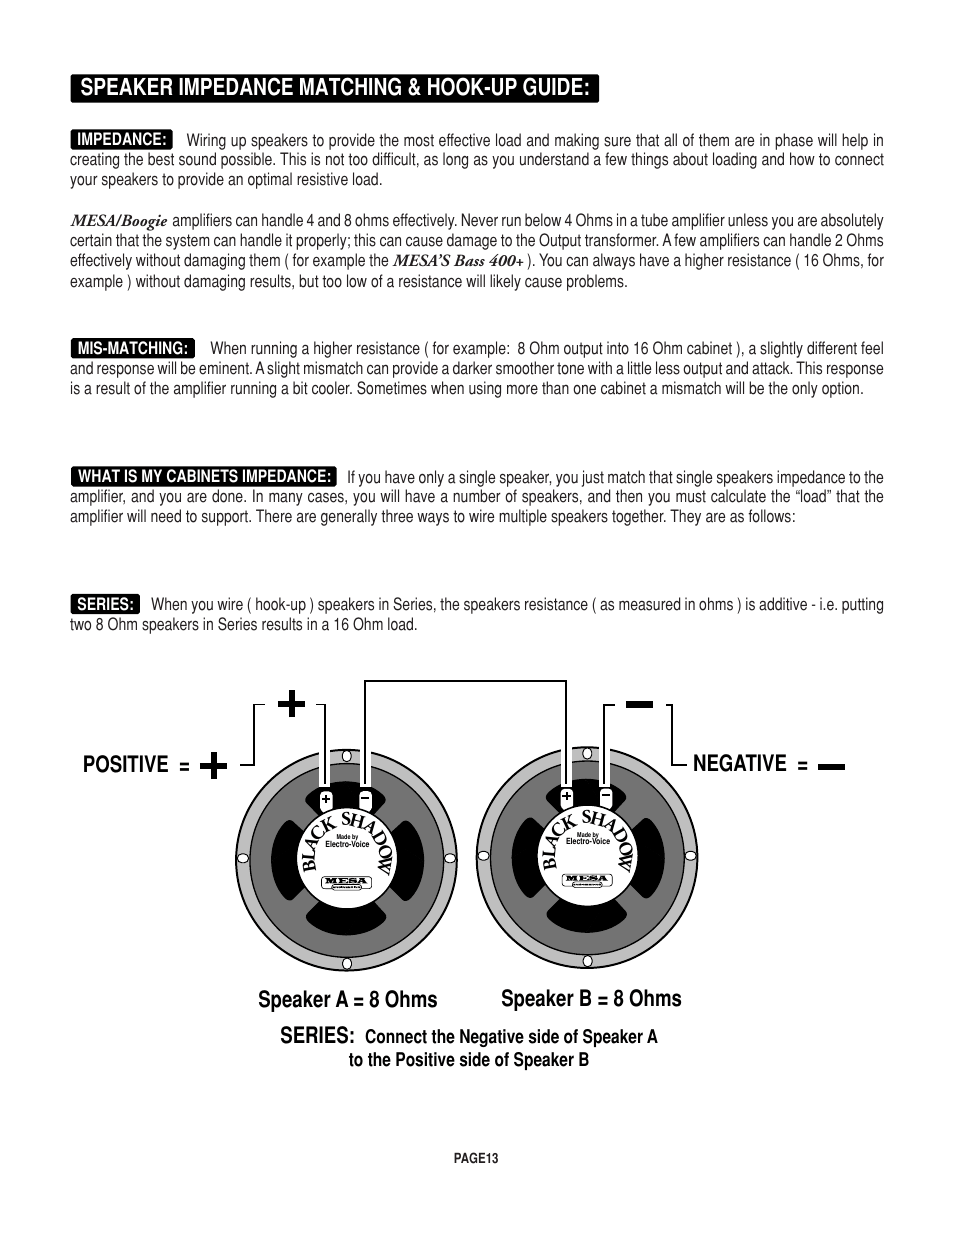 hight resolution of speaker impedance matching hook up guide speaker a 8 ohms speaker b 8 ohms series positive negative mesa boogie rectifier stereo user manual